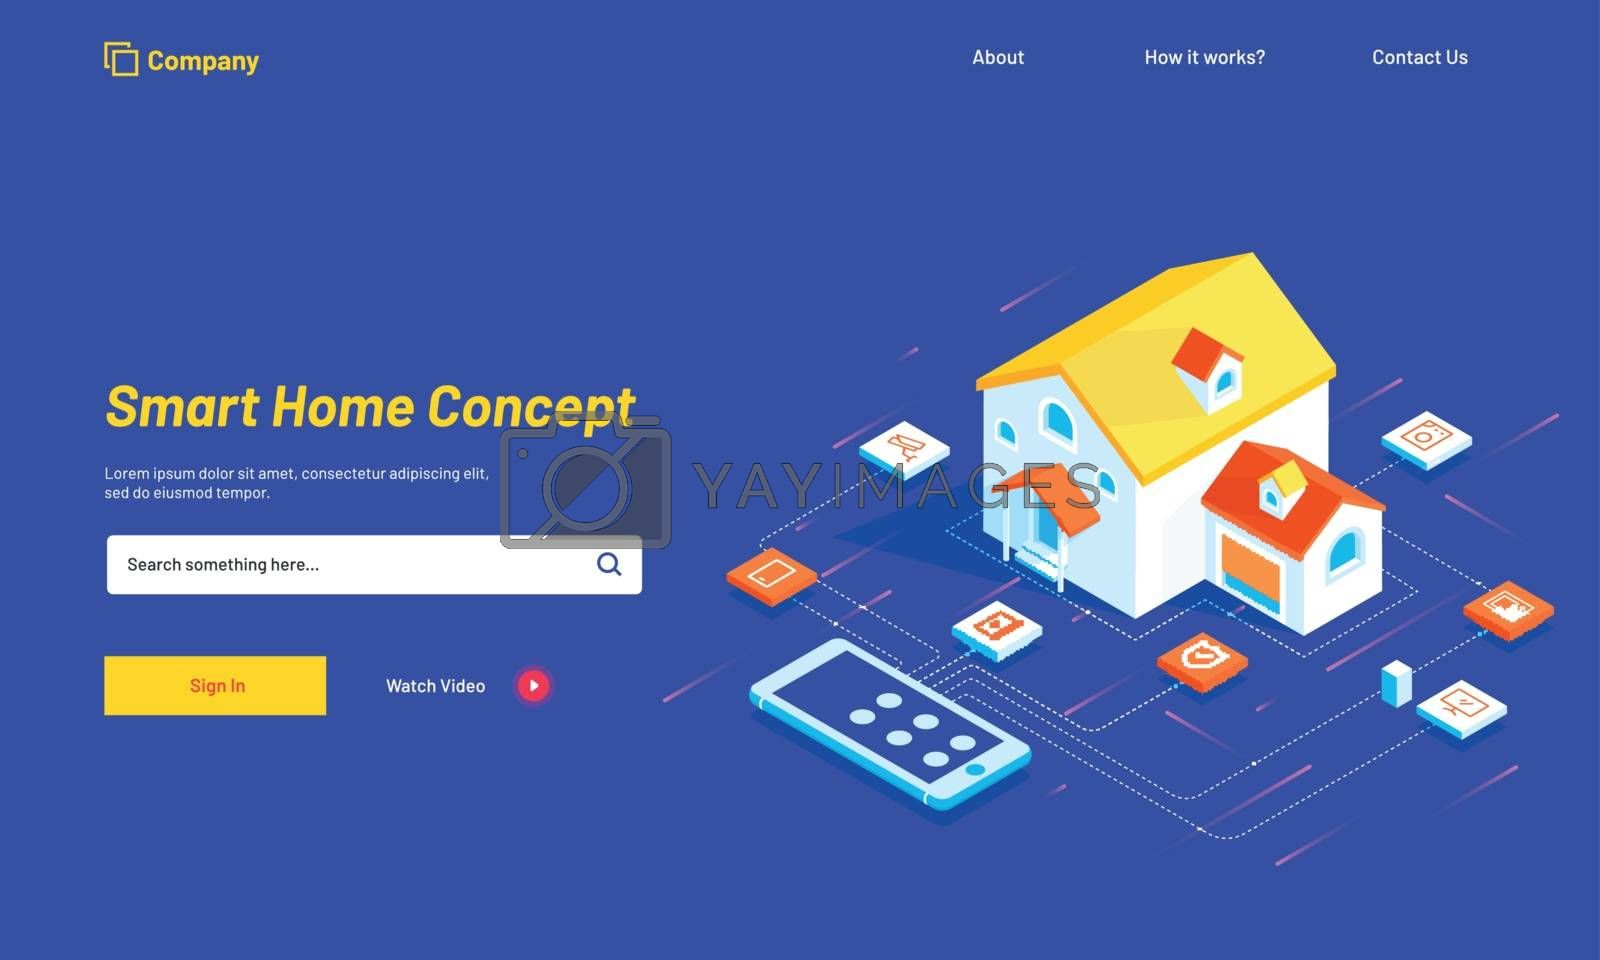 Royalty free image of Smart home connected and control with technology devices through by aispl